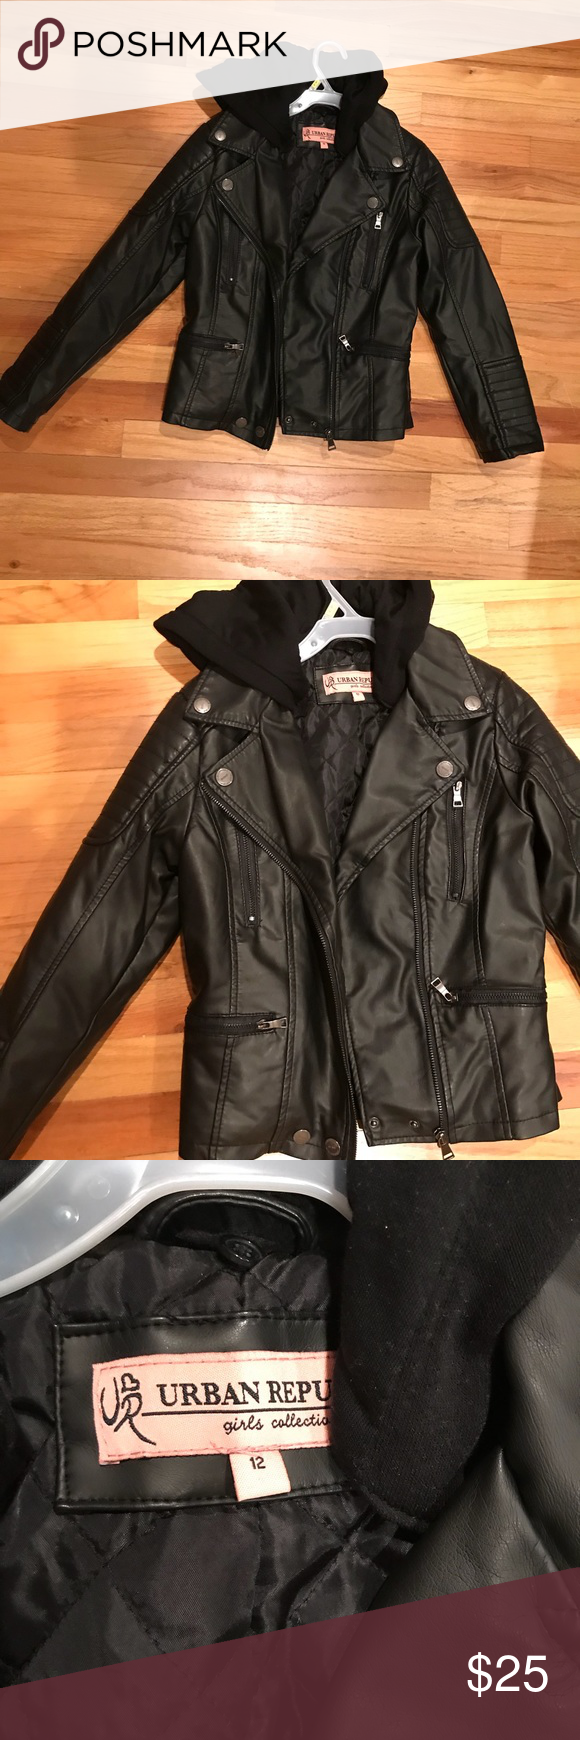 Little Girls Faux Leather Jacket Faux Leather Jackets Jackets Leather Jacket [ 1740 x 580 Pixel ]